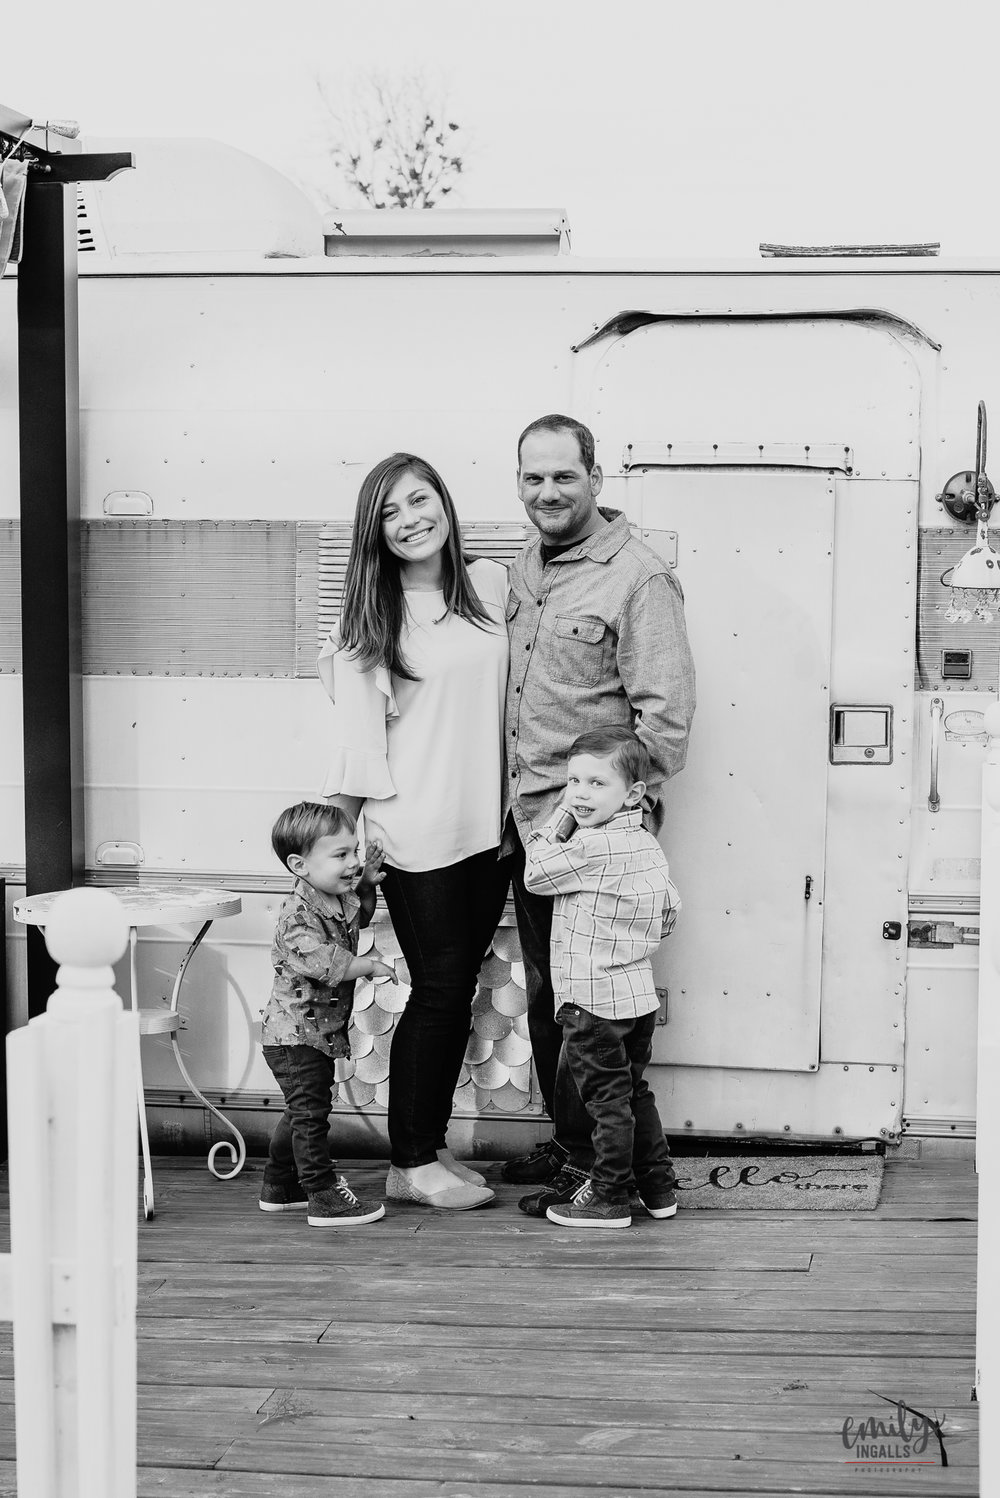 Family Photographer_Round Rock Photographer_Emily Ingalls Photography_Austin Photographer_Pflugerville Photographer_Georgetown Photographer_Dimebox Ballroom-10.jpg